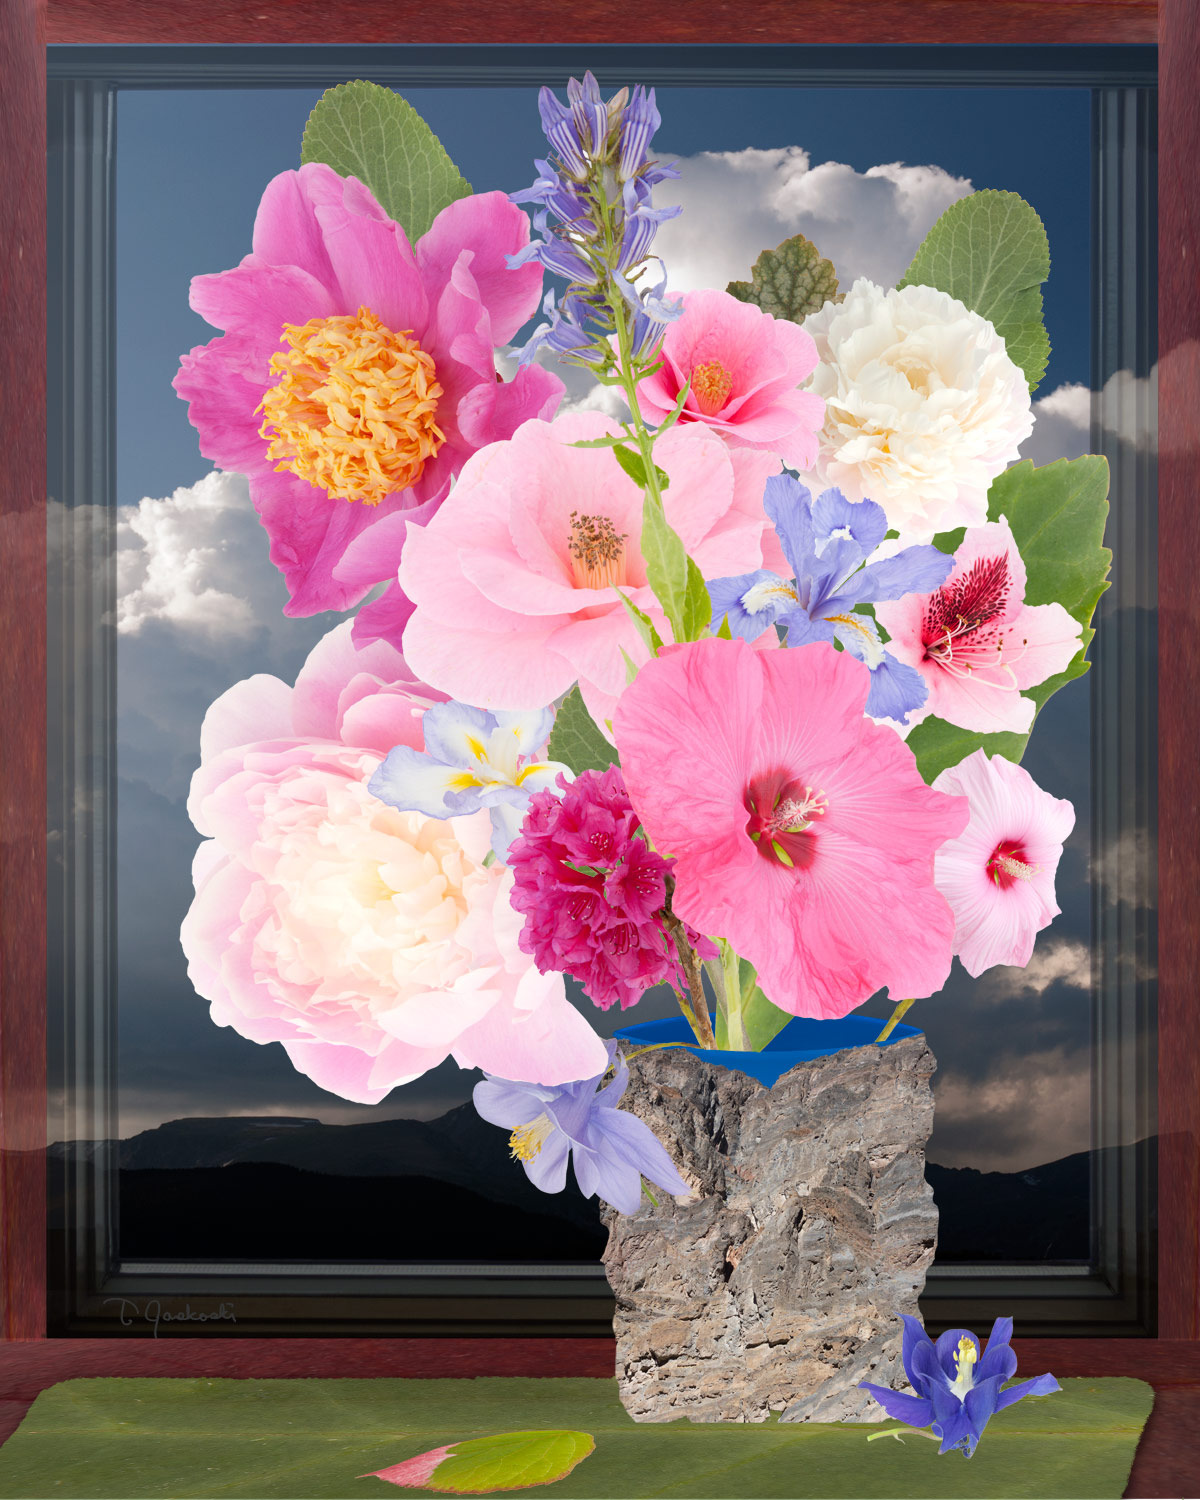 Flowers, Blue-Rimmed Vase & Mountain Clouds